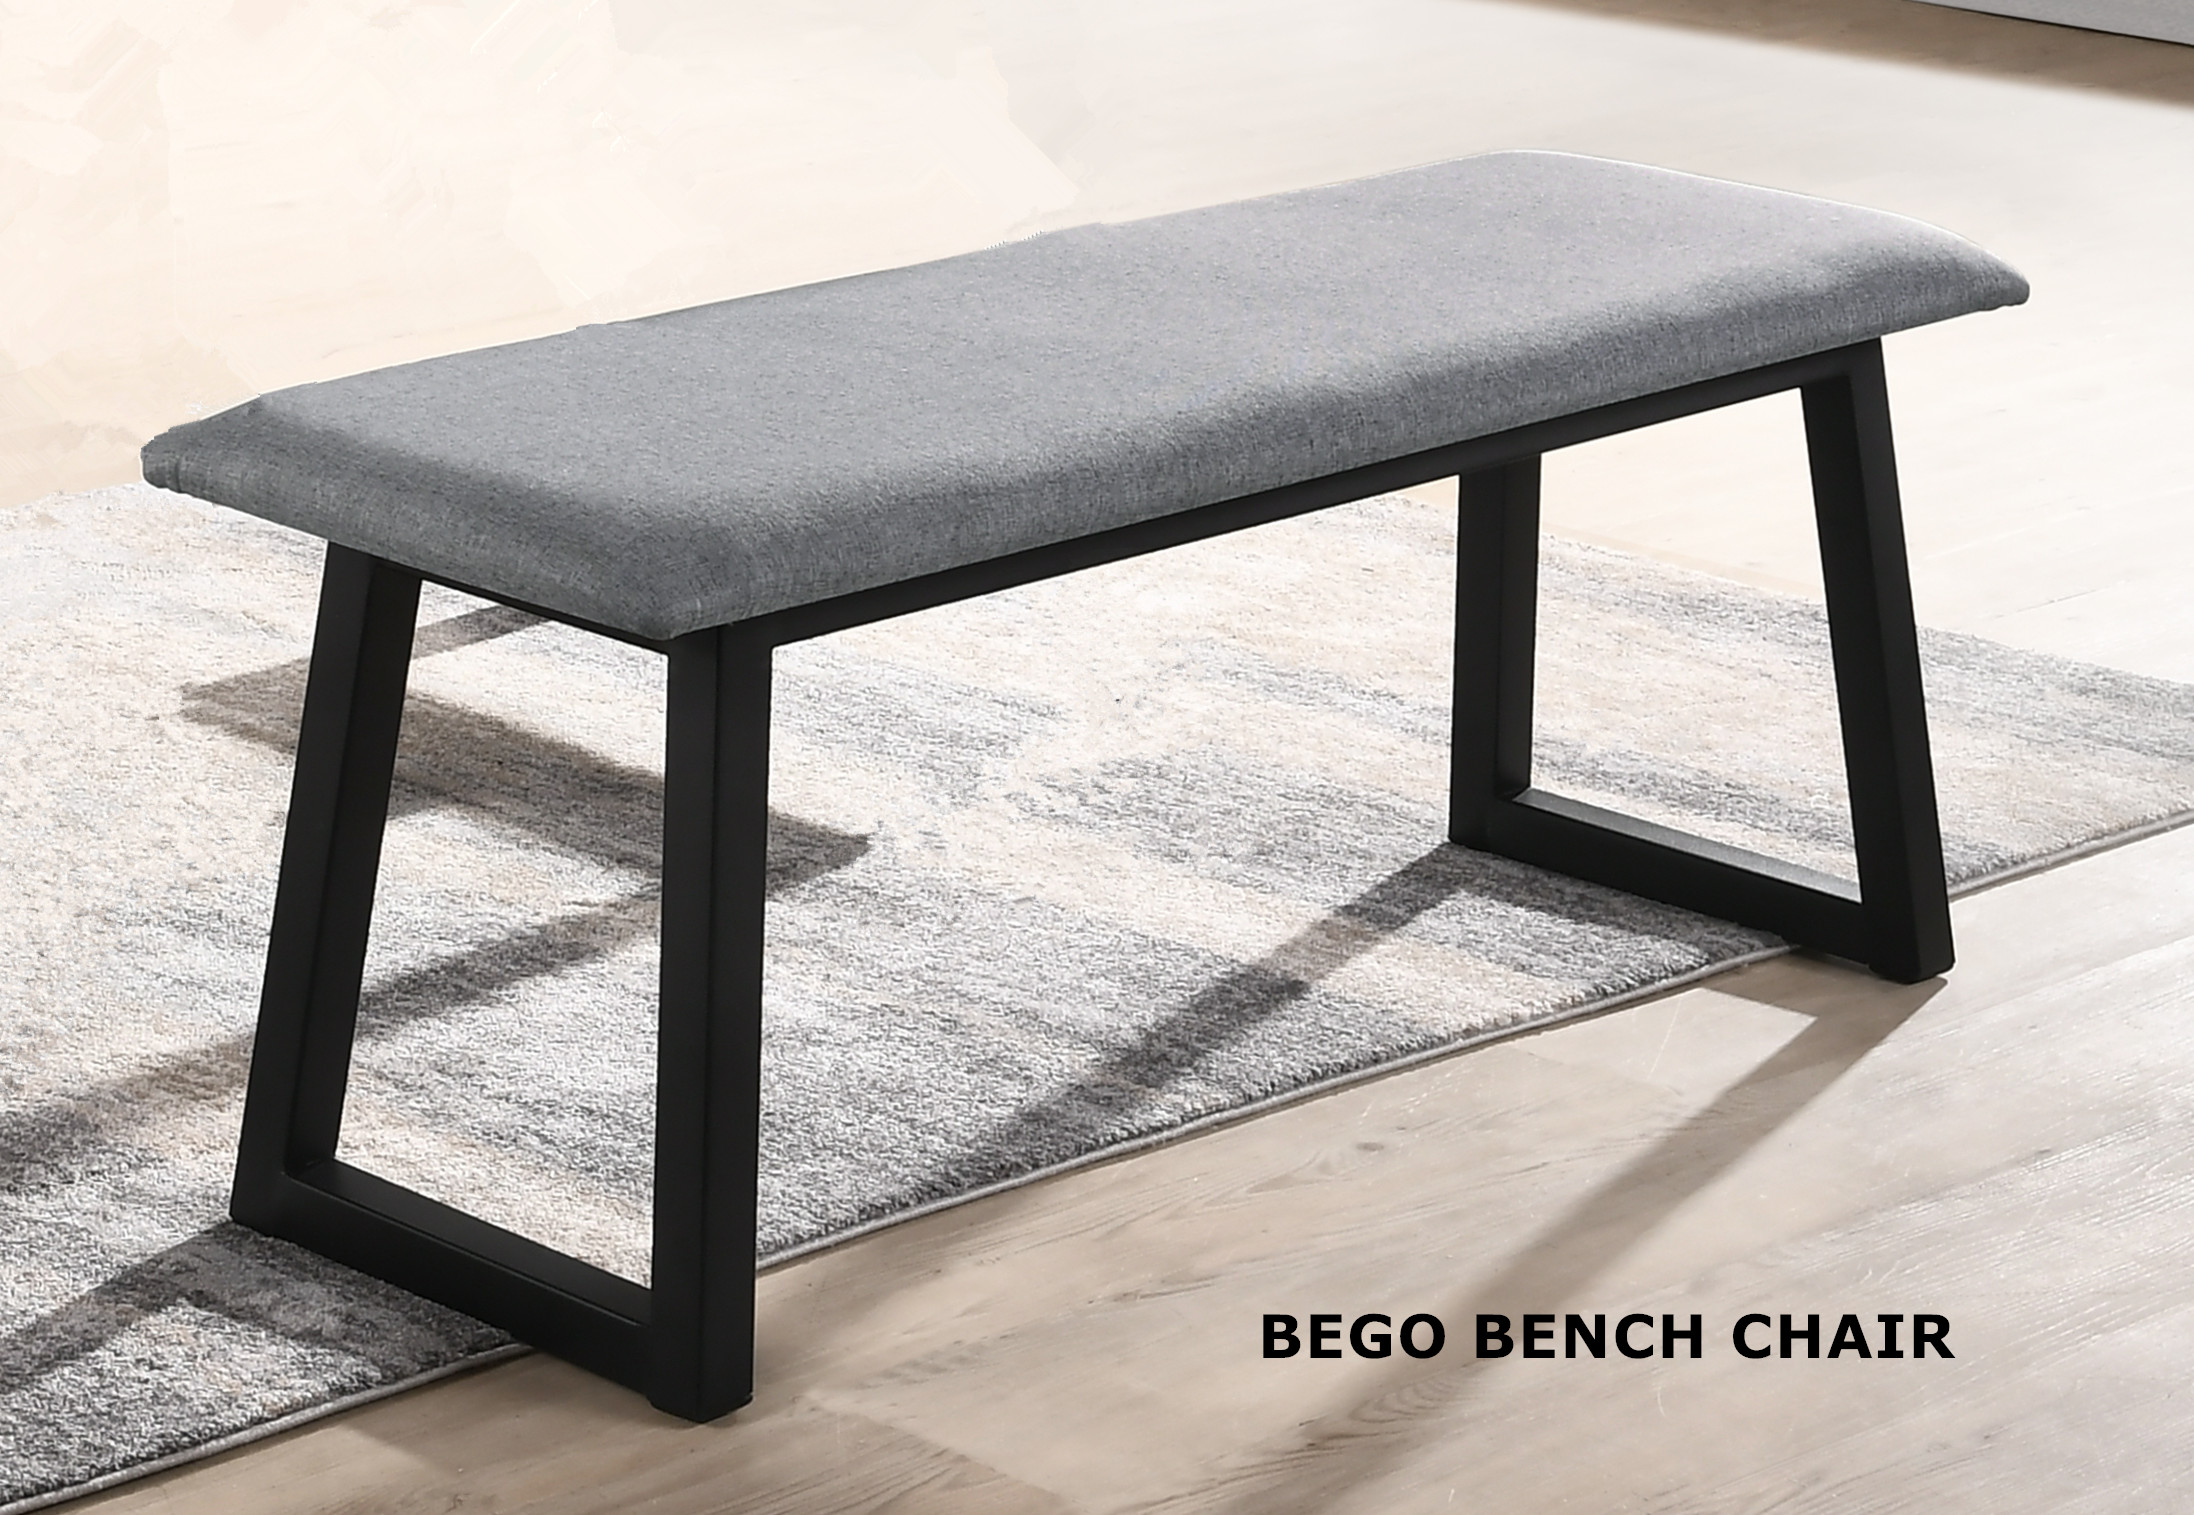 Bego Bench Chair